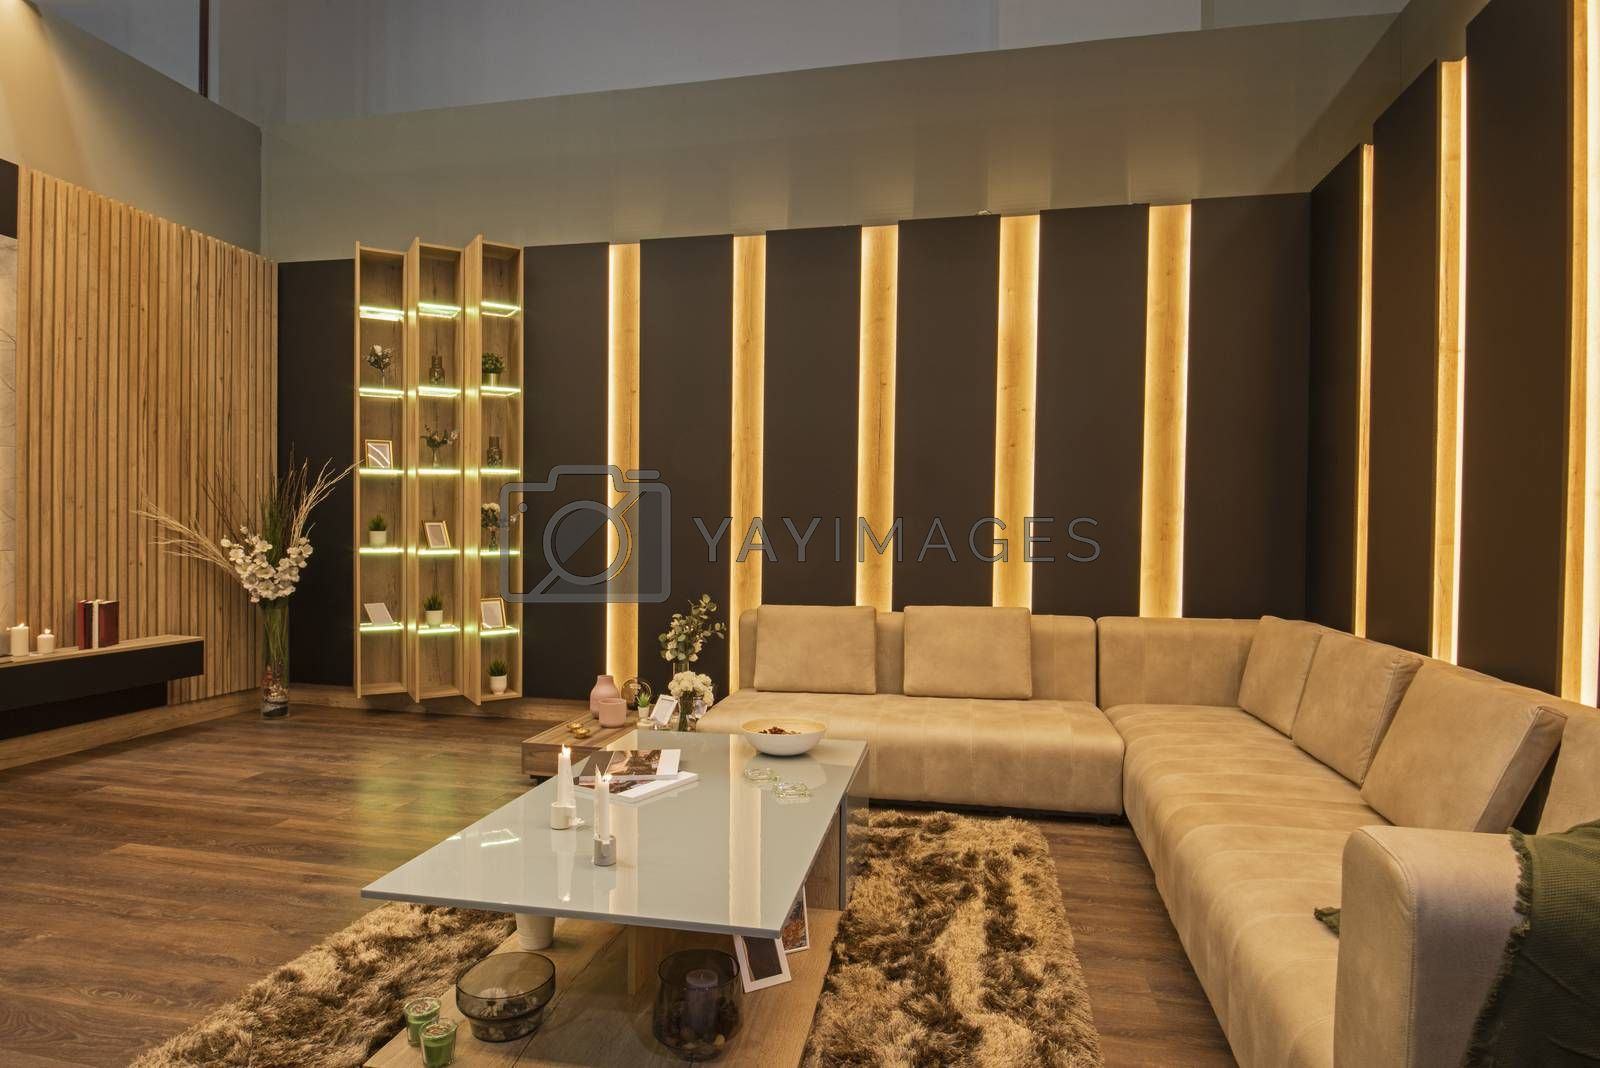 Living room lounge area in luxury apartment show home showing interior design decor furnishing with large sofa